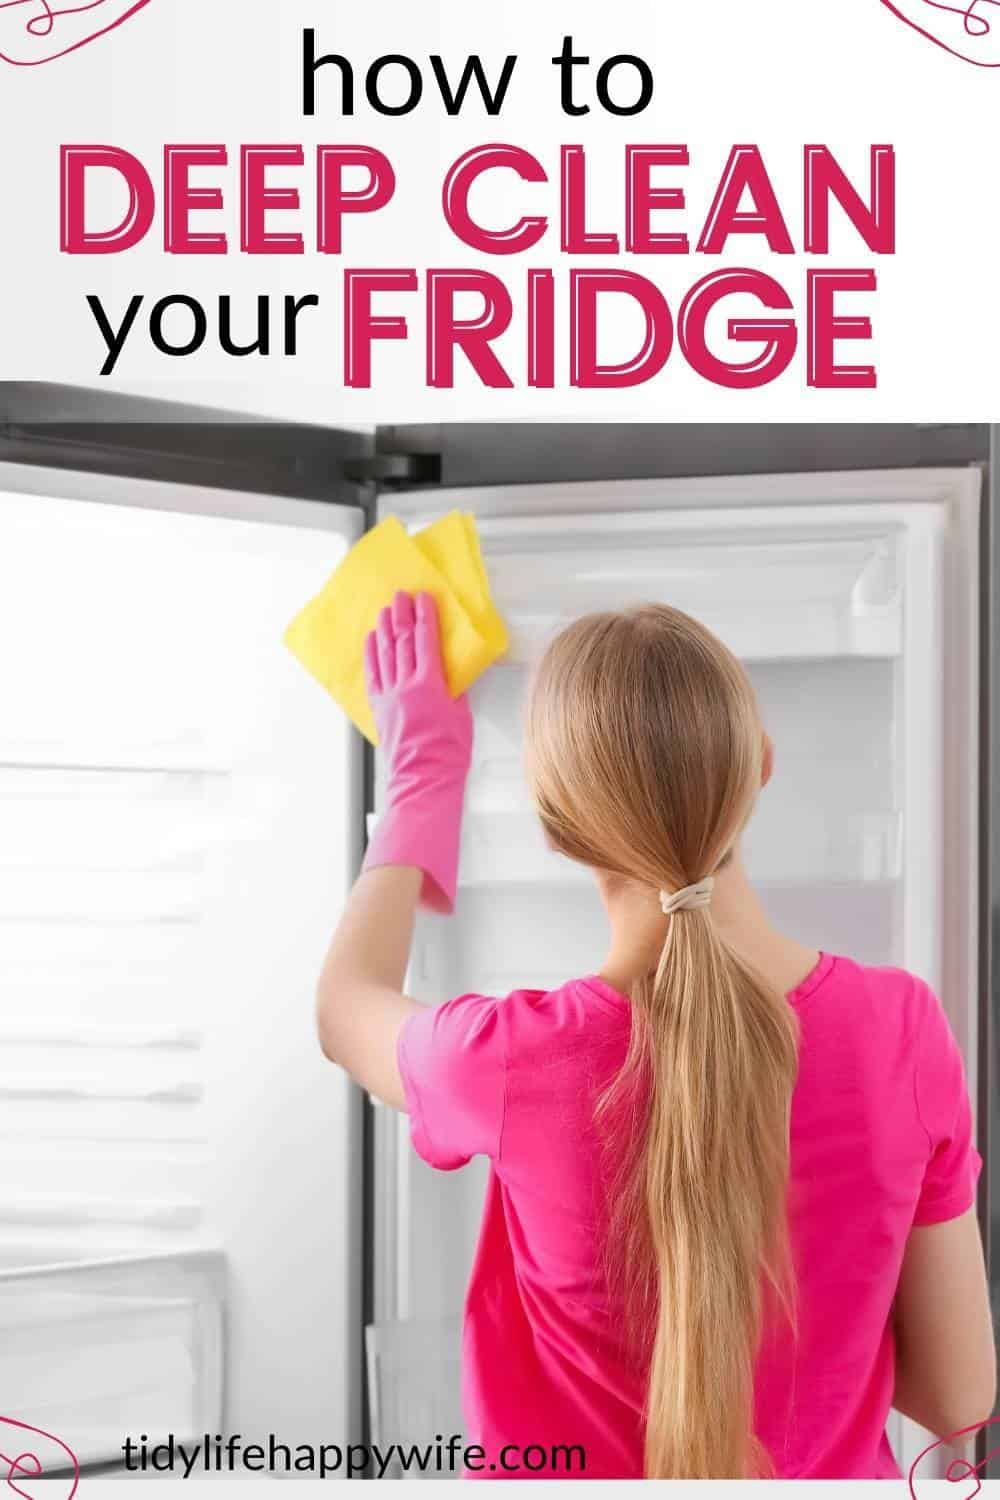 Stinky Fridge? Here's a step-by-step tutorial to deep clean the fridge. Cleaning tips for removing stubborn stains and getting rid of bad odors. How to clean the glass shelves and removable plastic dividers. Cleaning hacks for cleaning the crisper drawers, ice maker, and water dispenser. The best cleaning products for cleaning the refrigerator.  via @Tidylifehappywife